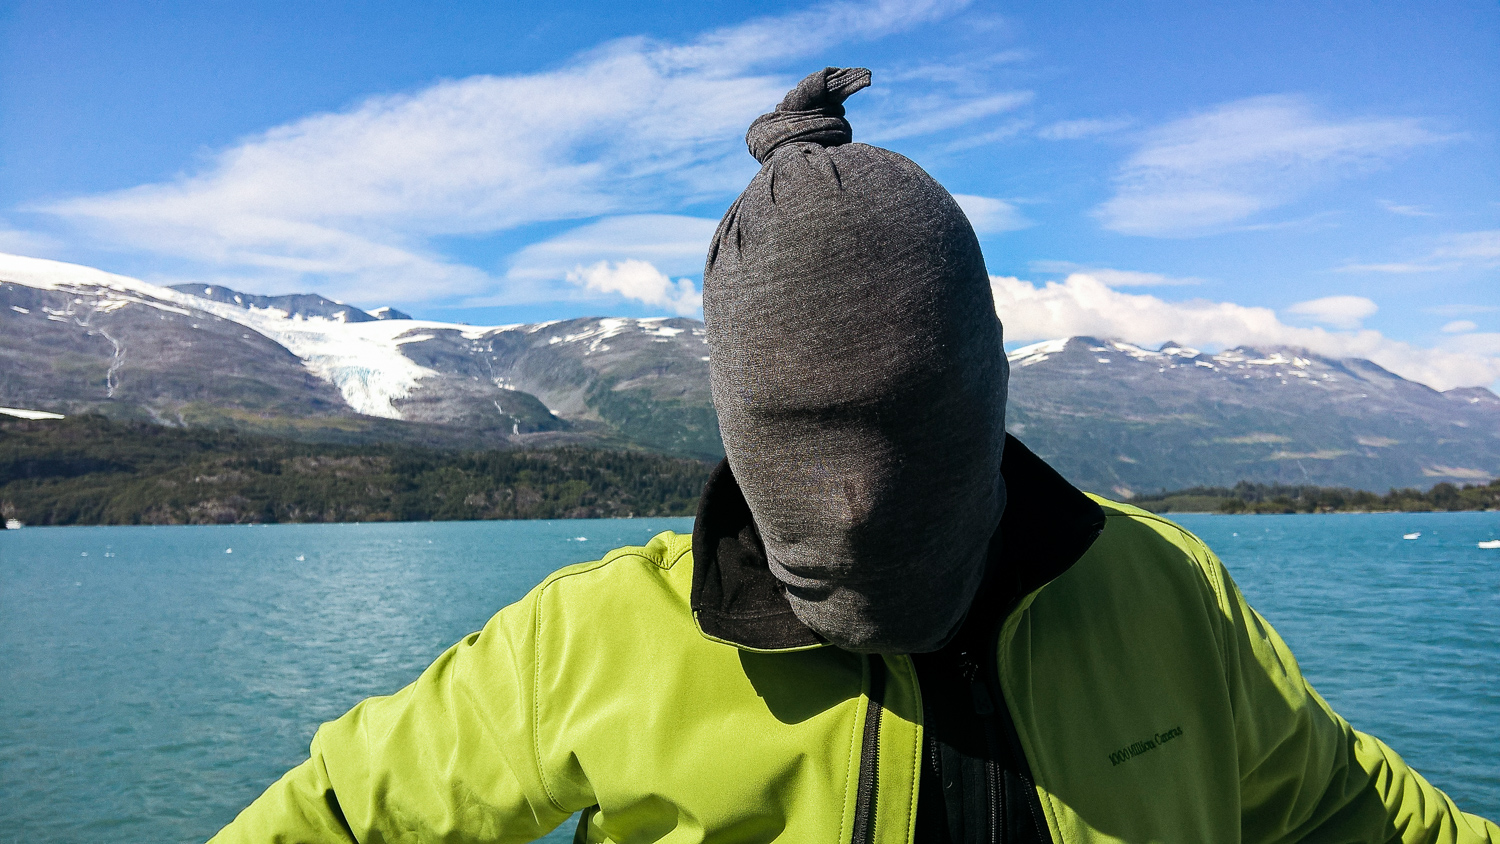 I didn't actually bring a coat with me to Alaska, which was an interesting choice. Our host was more prepared.